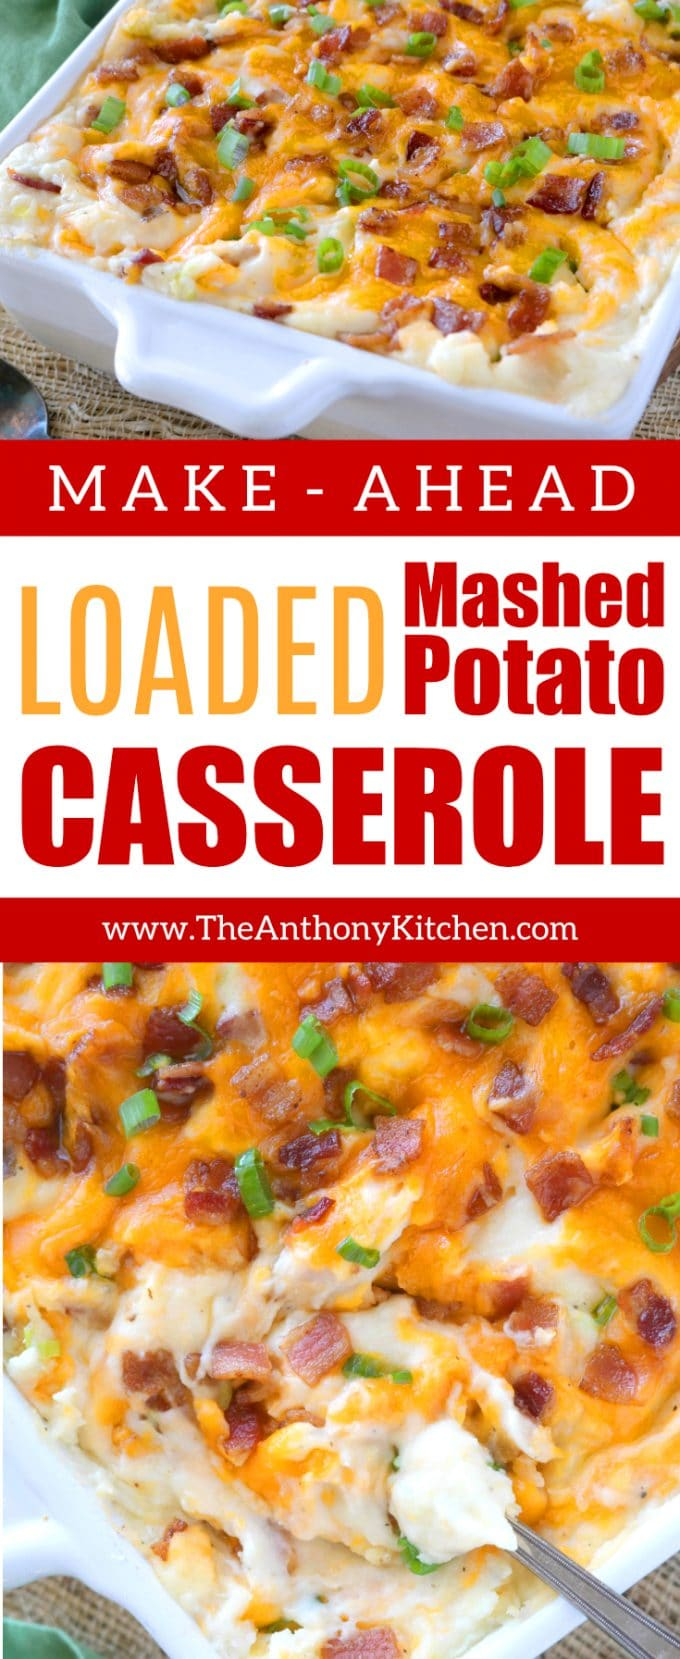 MAKE-AHEAD MASHED POTATO CASSEROLE